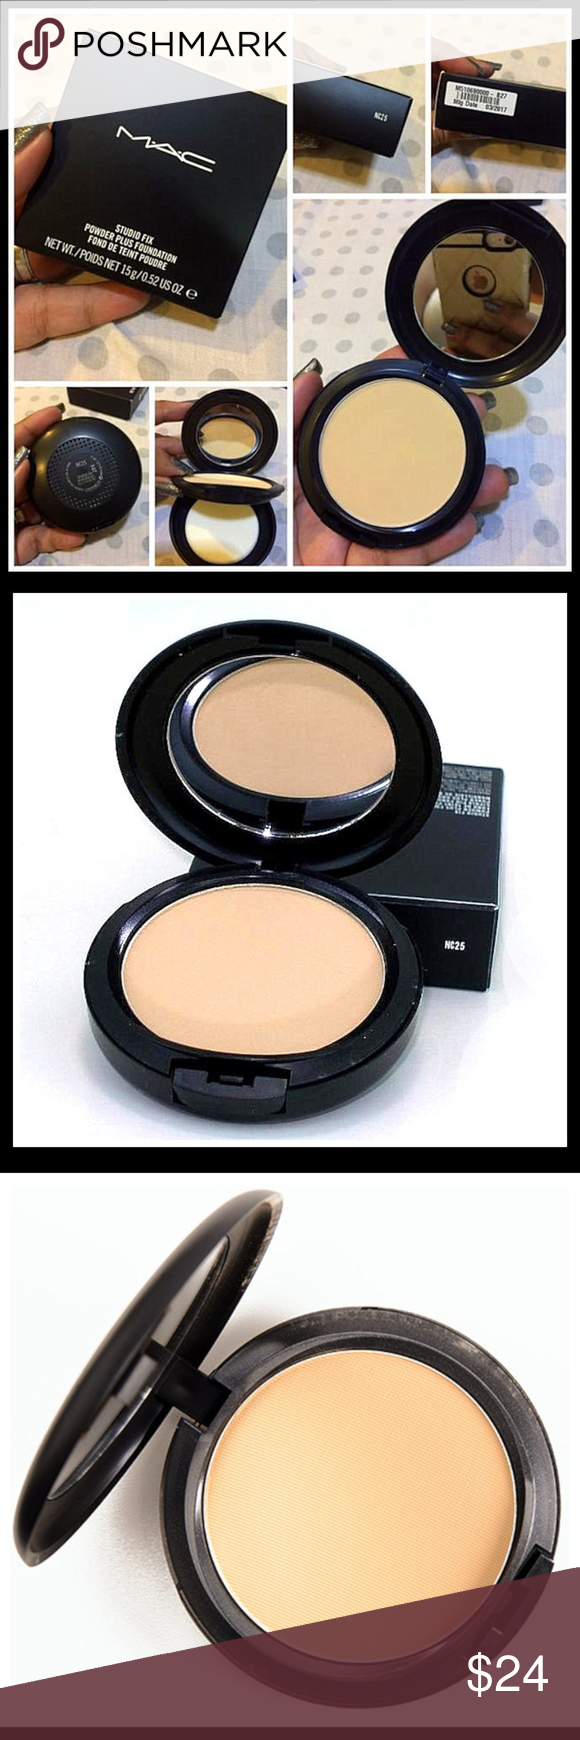 Mac Studio Fix Powder Plus Foundation Nc25 Boutique My Posh Closet This Is A One Step And That Provides Matte Texture With Medium To Full Coverage